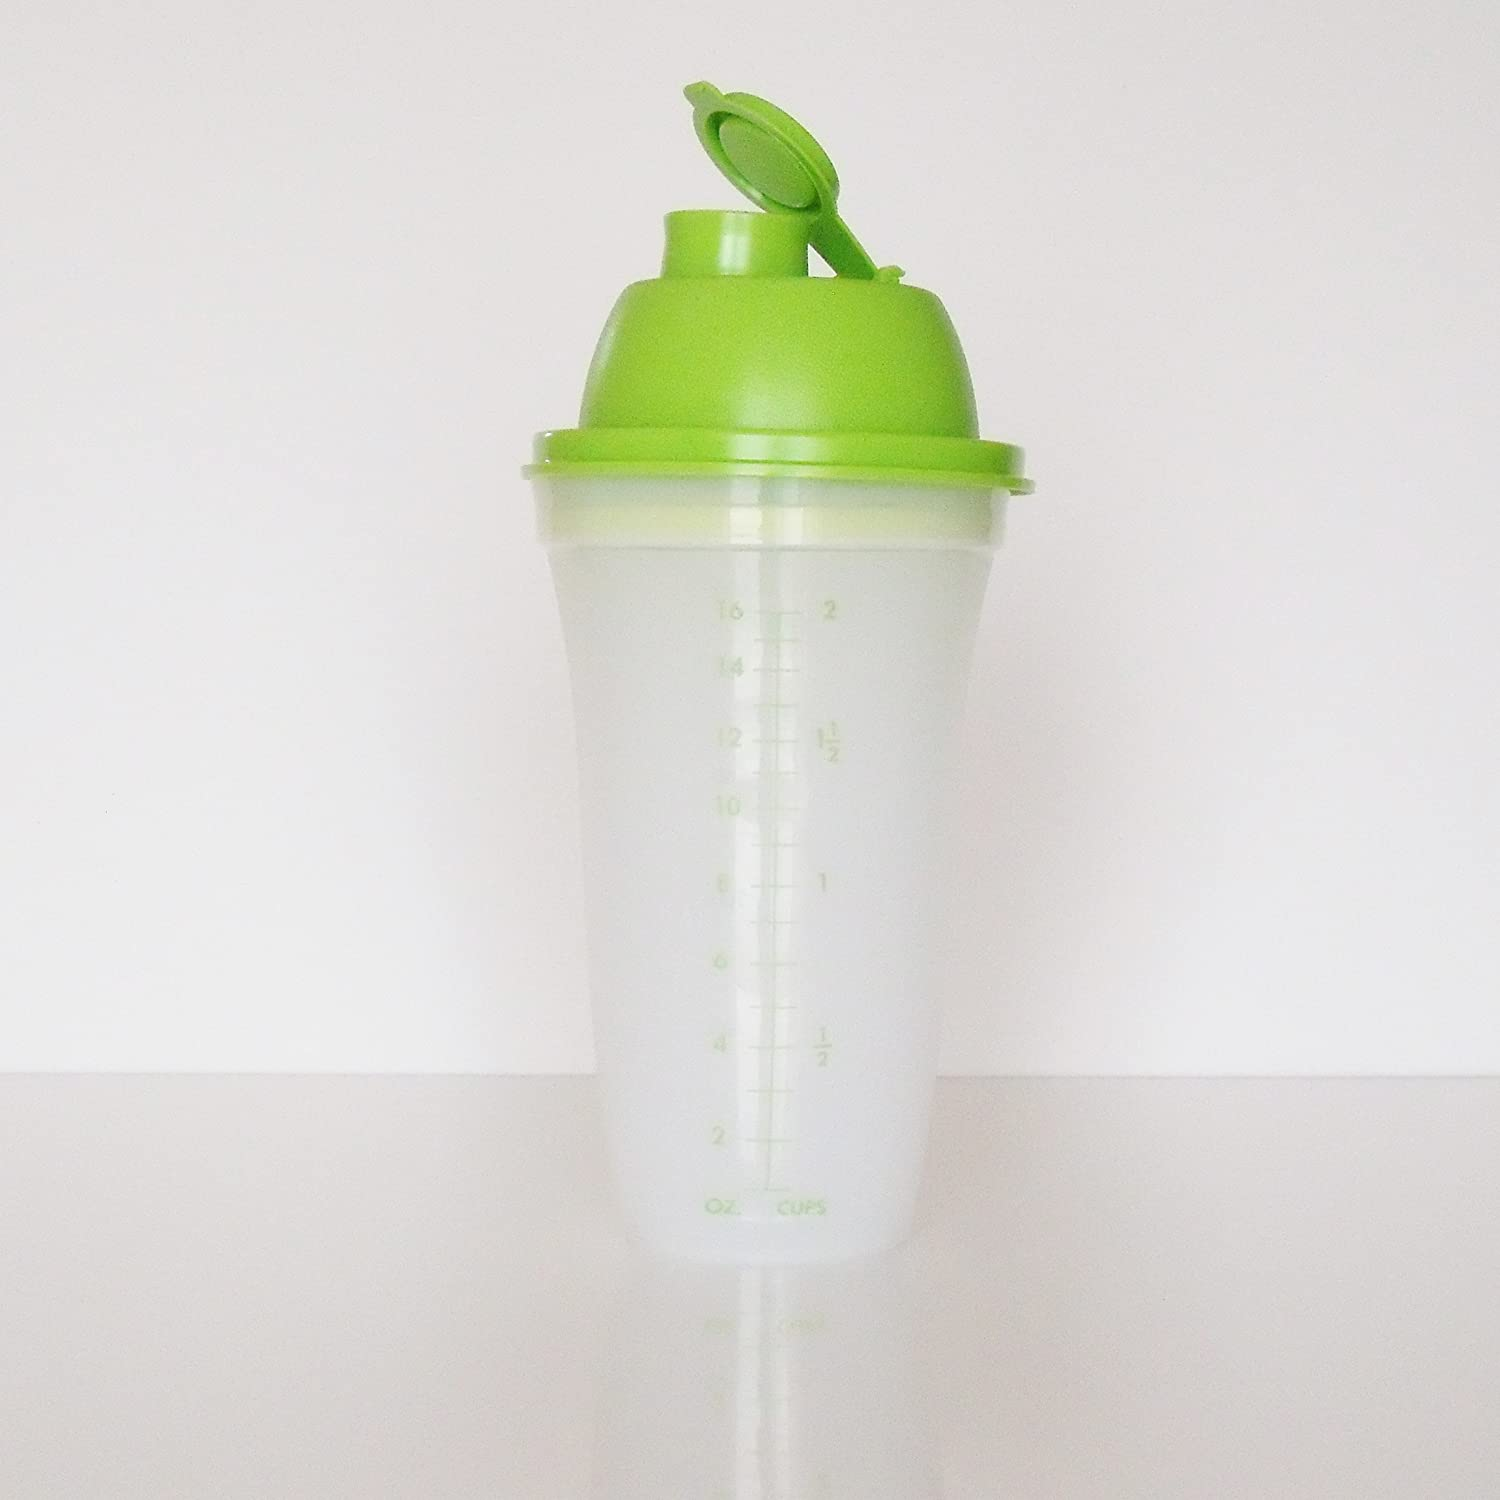 Tupperware Quick Shake Mixer Blender NEW Lime Green COMINHKR018365